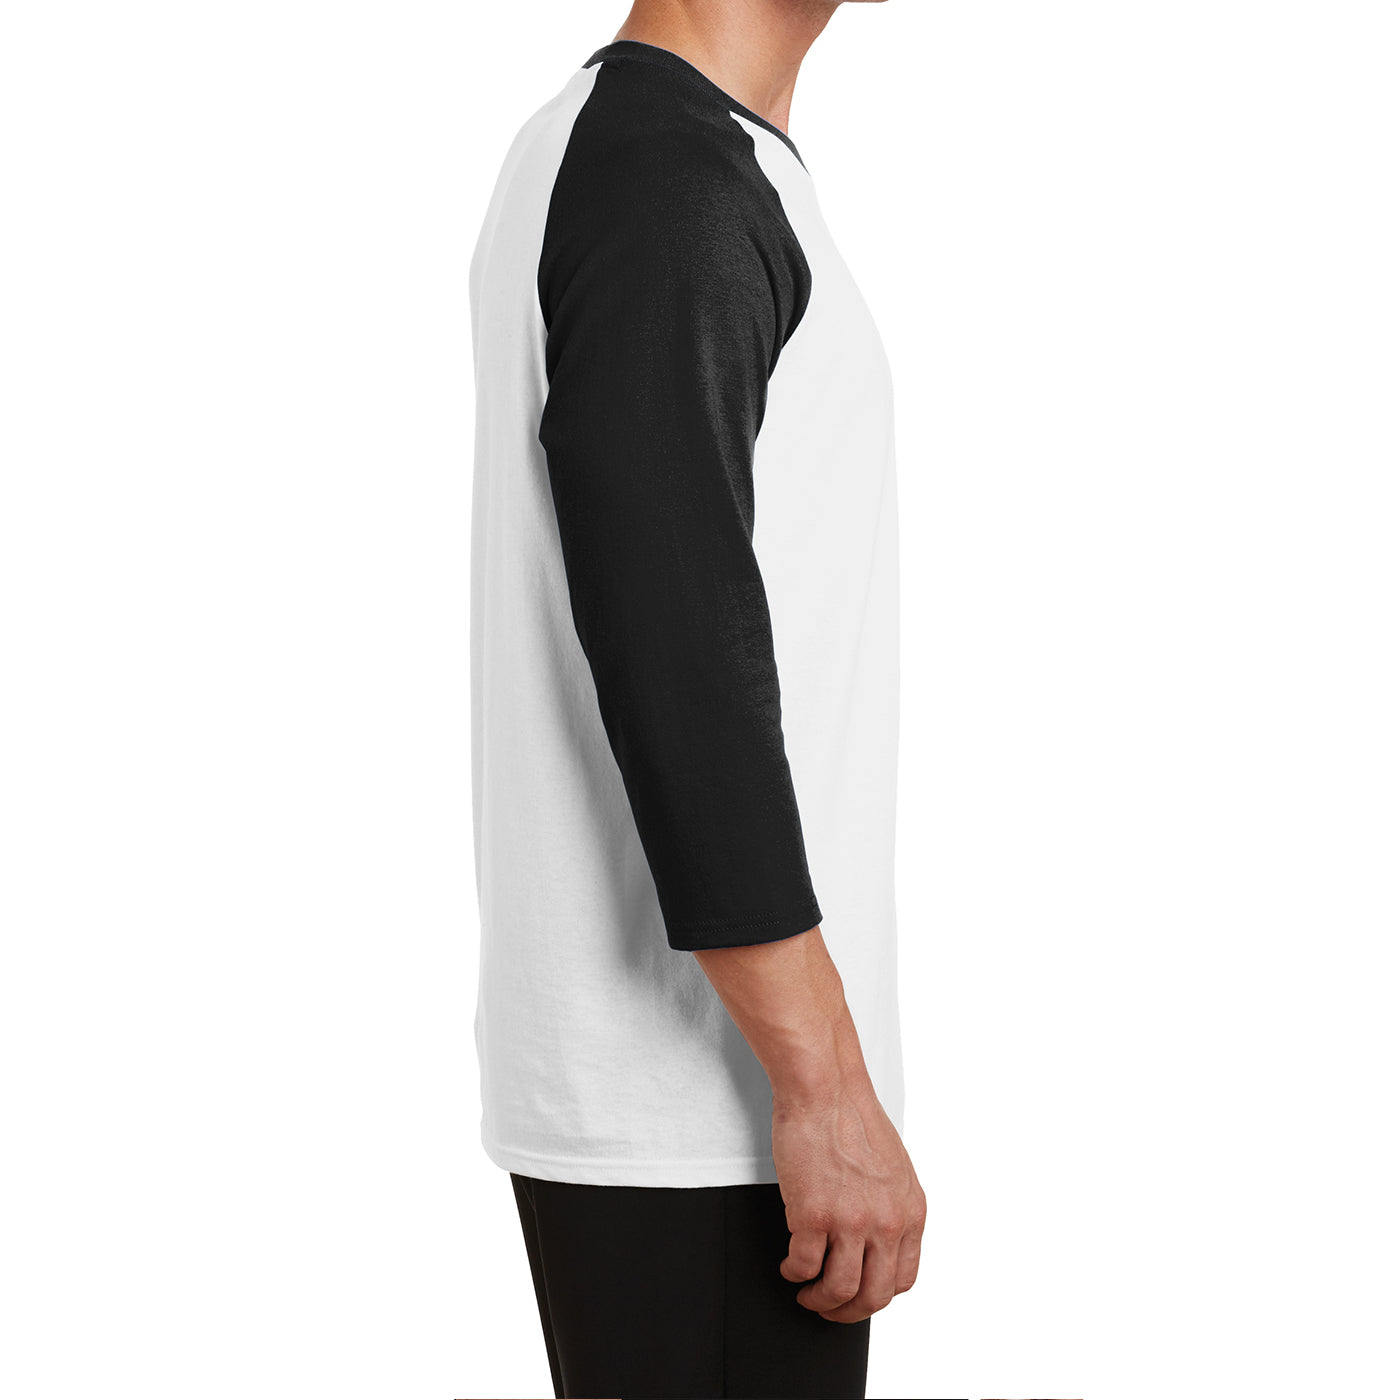 Men's Core Blend 3/4-Sleeve Raglan Tee - White/ Jet Black - Side